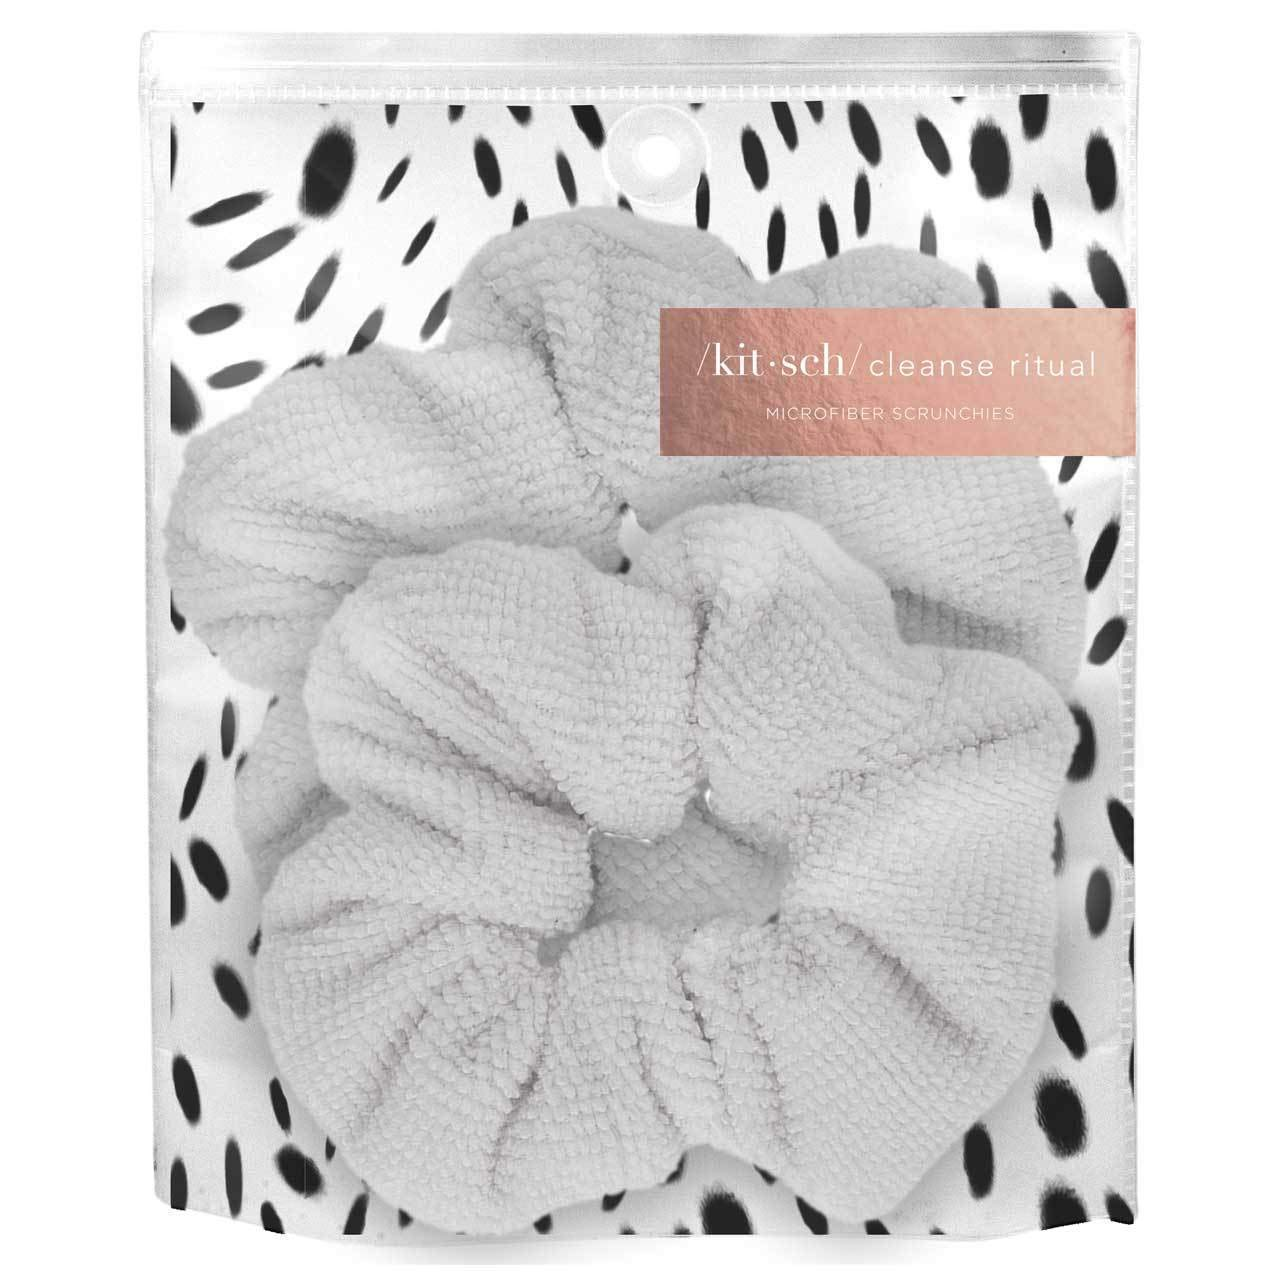 Kitsch Ultra Soft Microfiber Hair Drying Scrunchies for Frizz Free, Heatless Hair Drying, Towel Scrunchies, 2 Pack, White by Kitsch